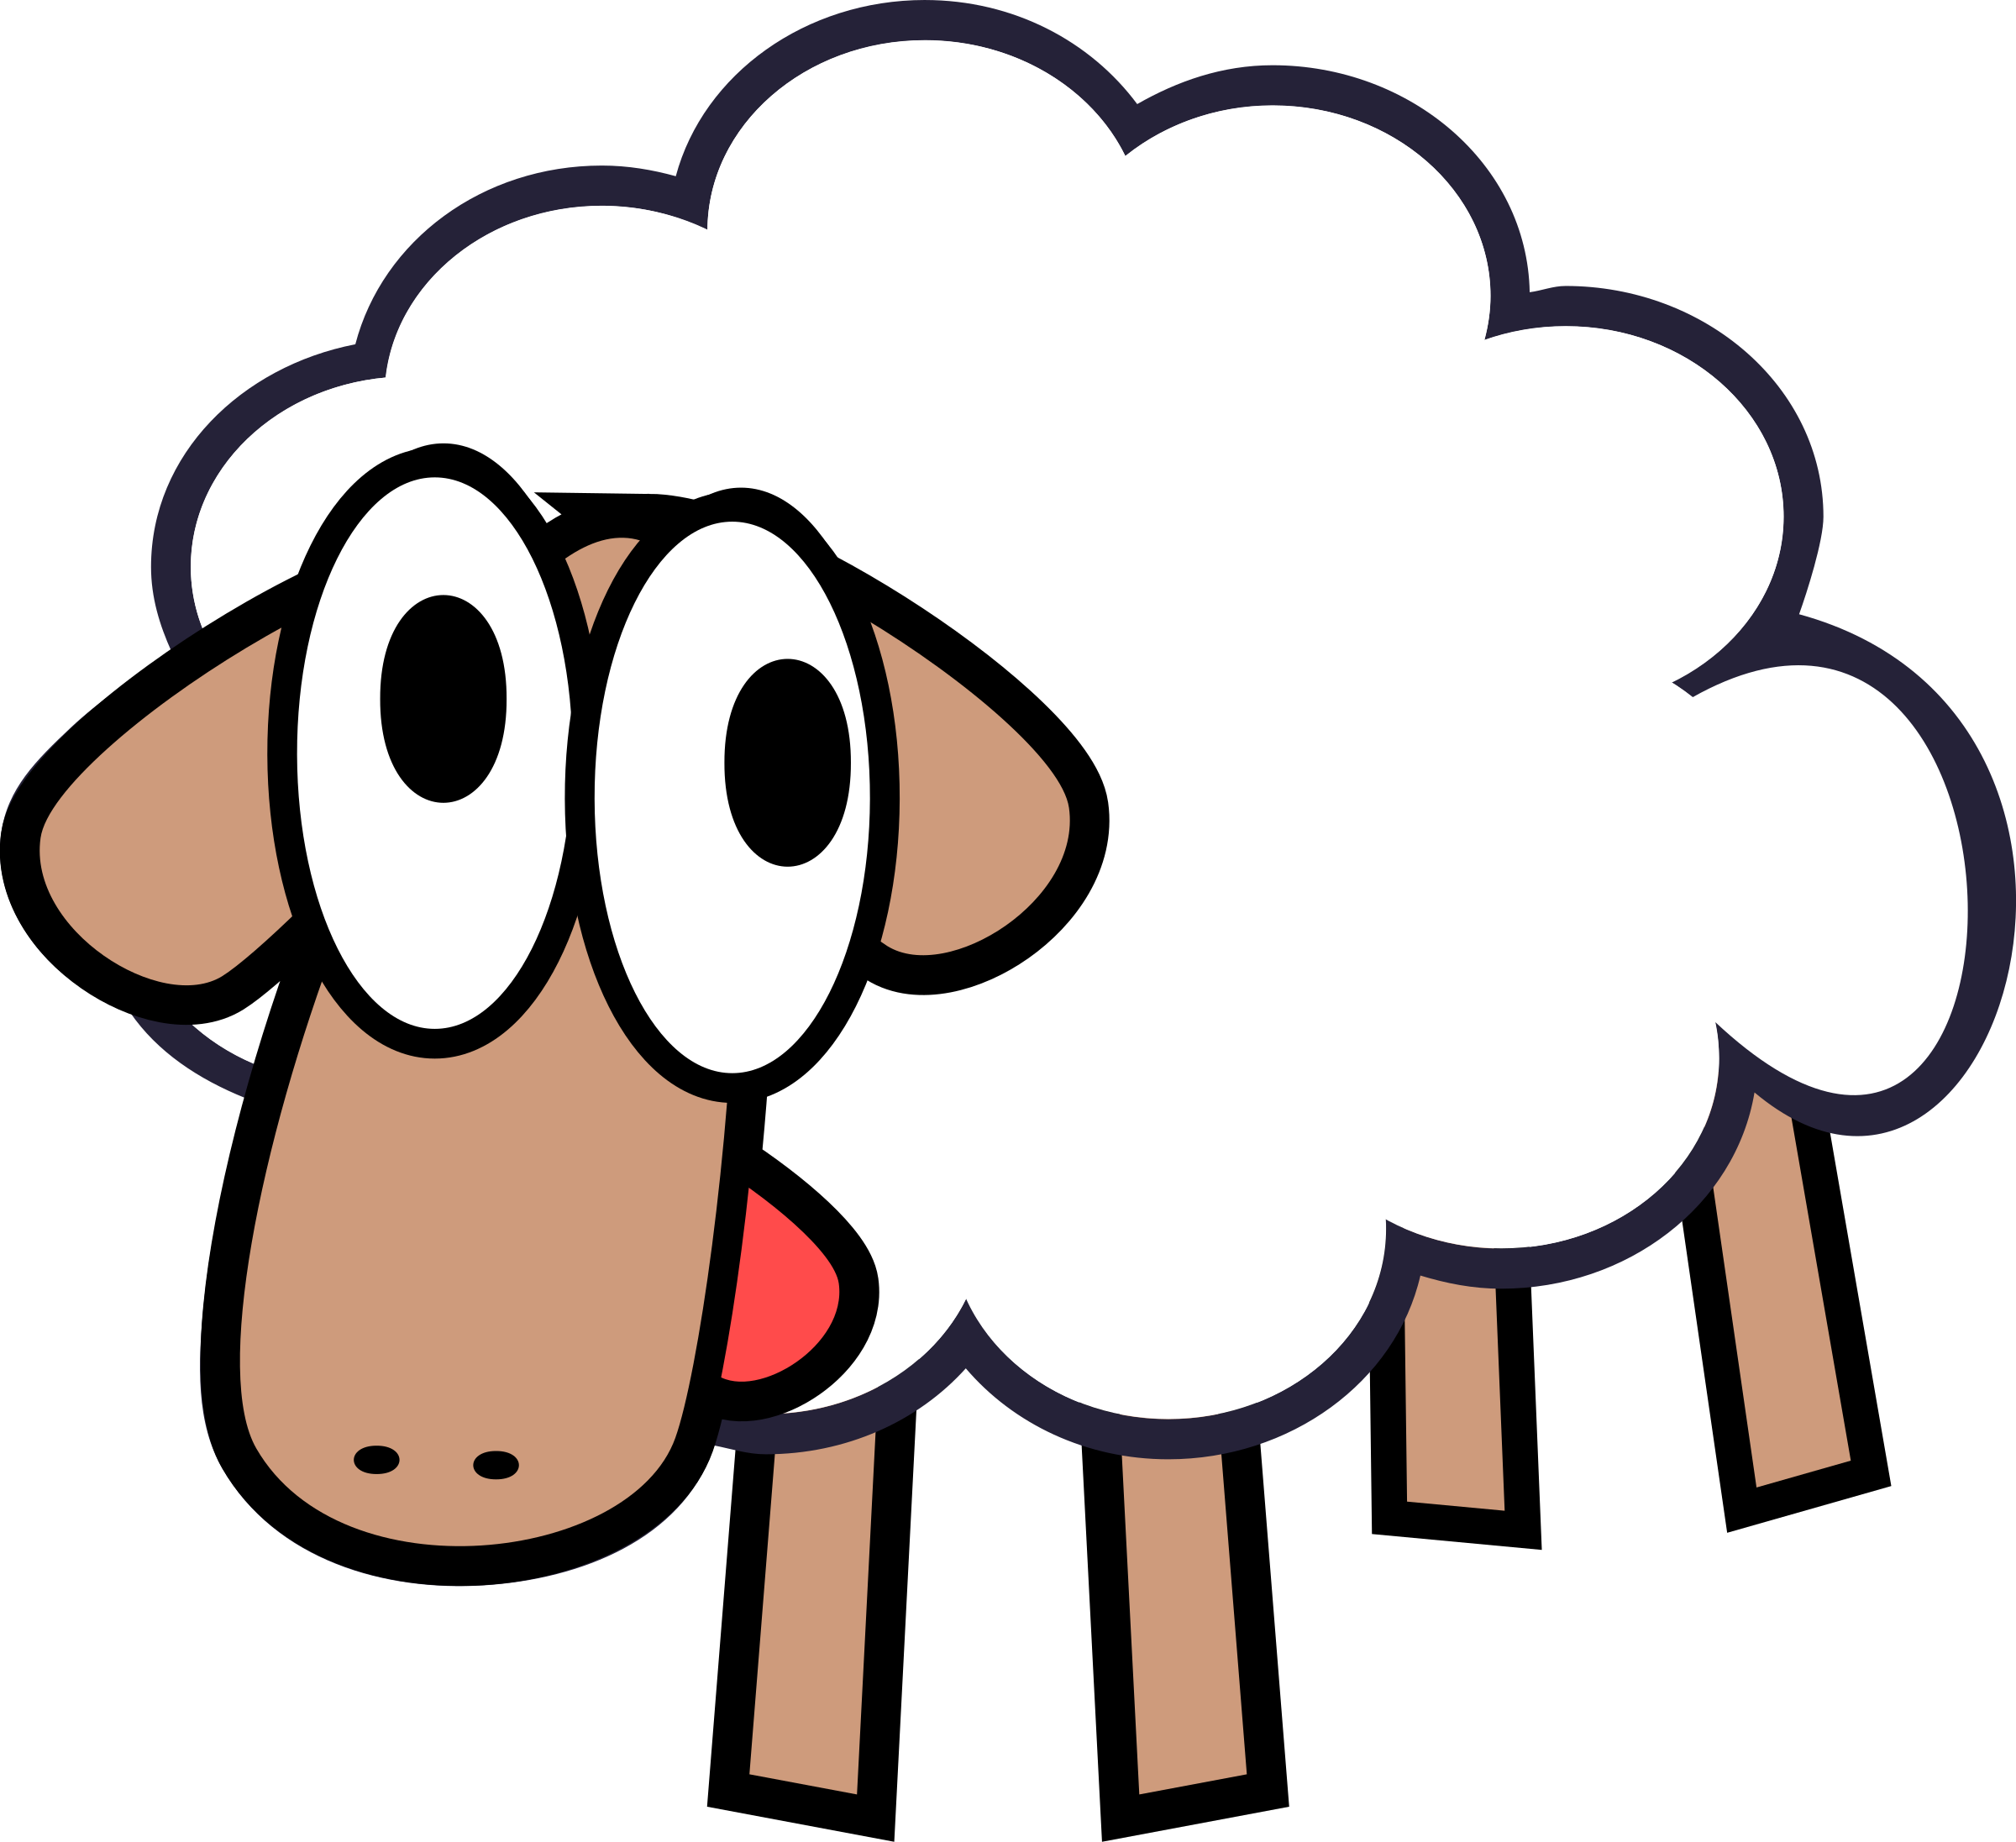 Lamb clipart mouton, Lamb mouton Transparent FREE for.